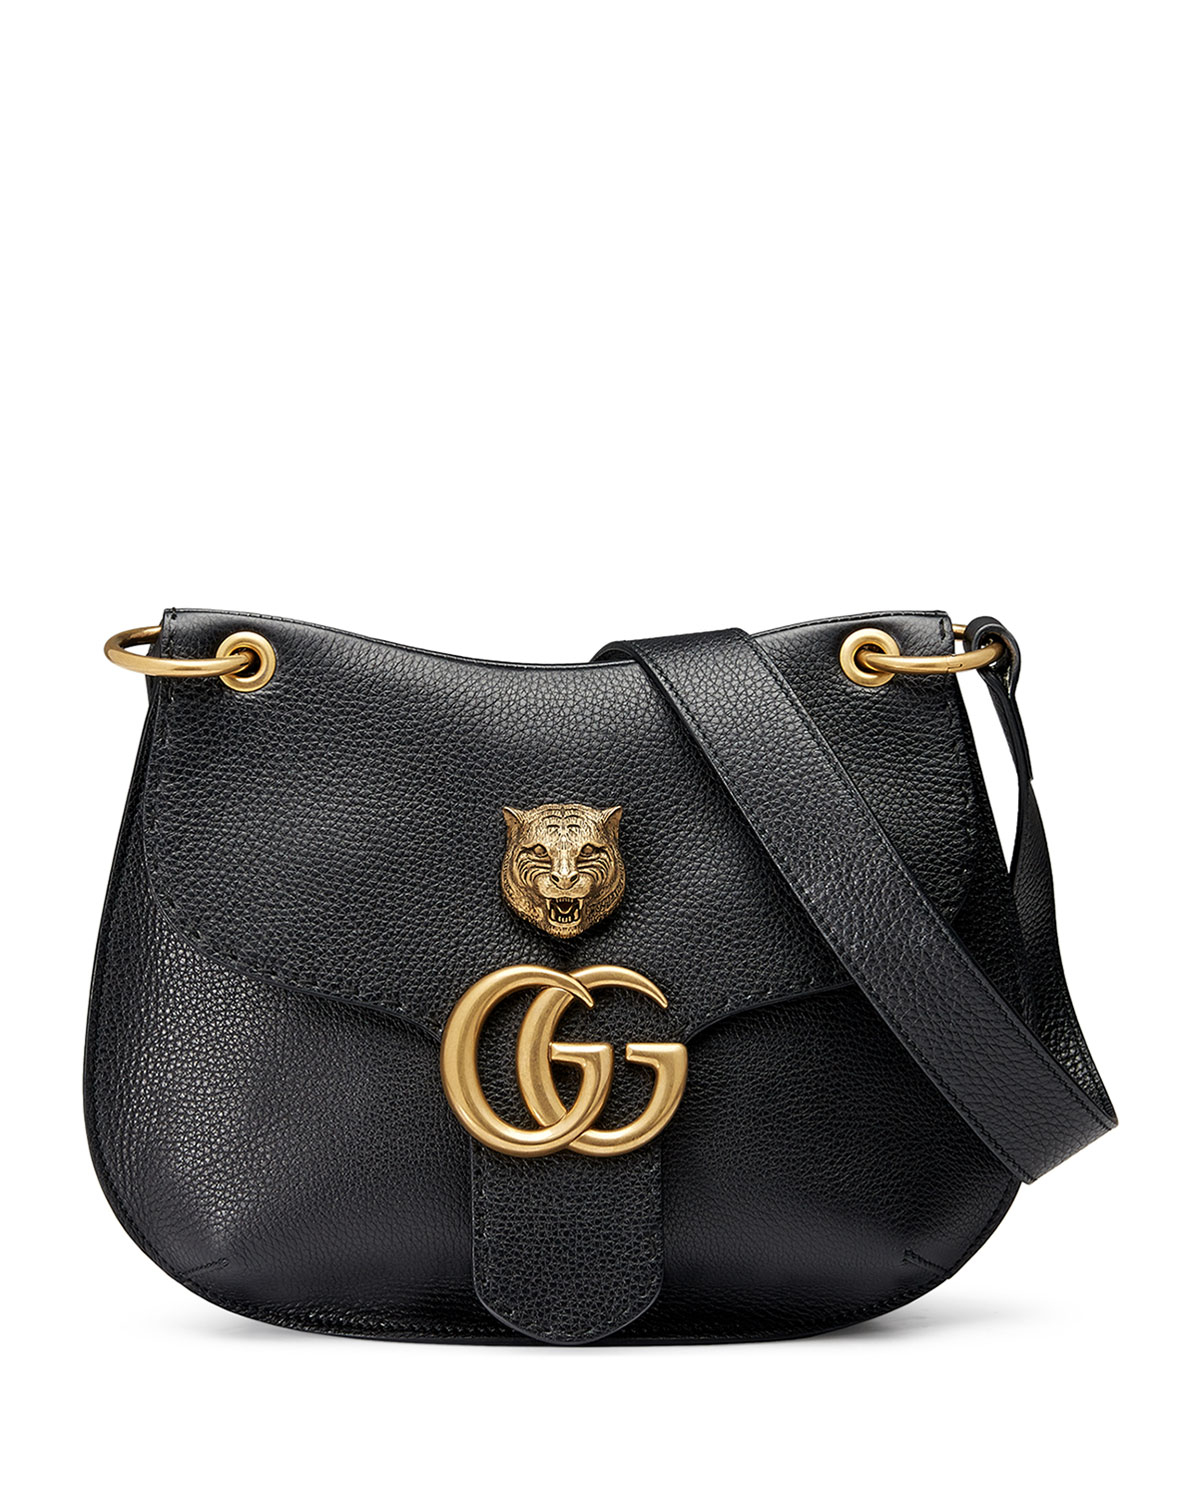 3ed120838402 Gucci Gg Marmont Leather Tiger Bag in Black - Lyst